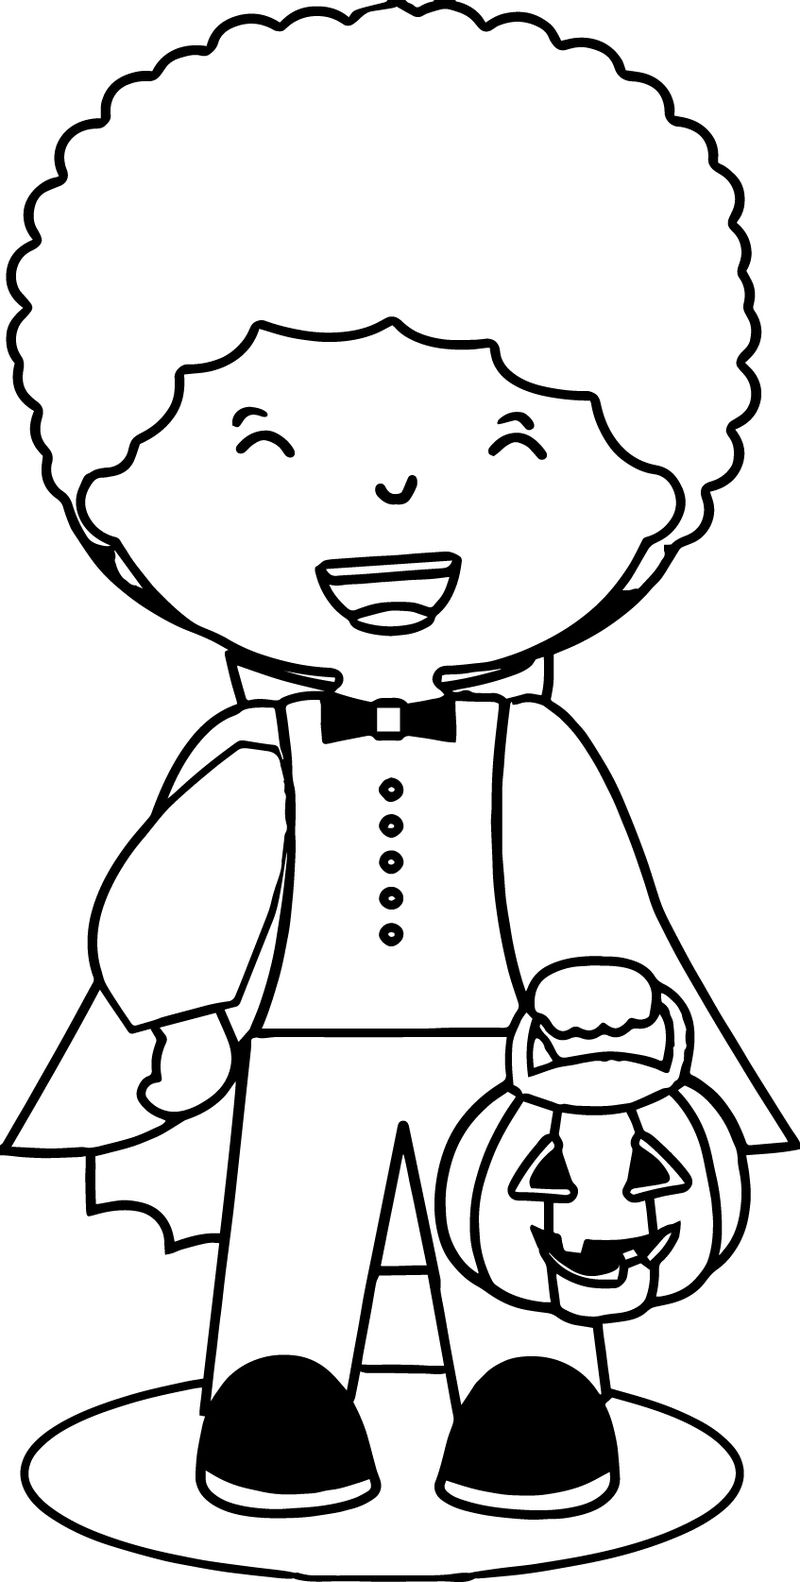 Halloween Costumes Child Coloring Page 05